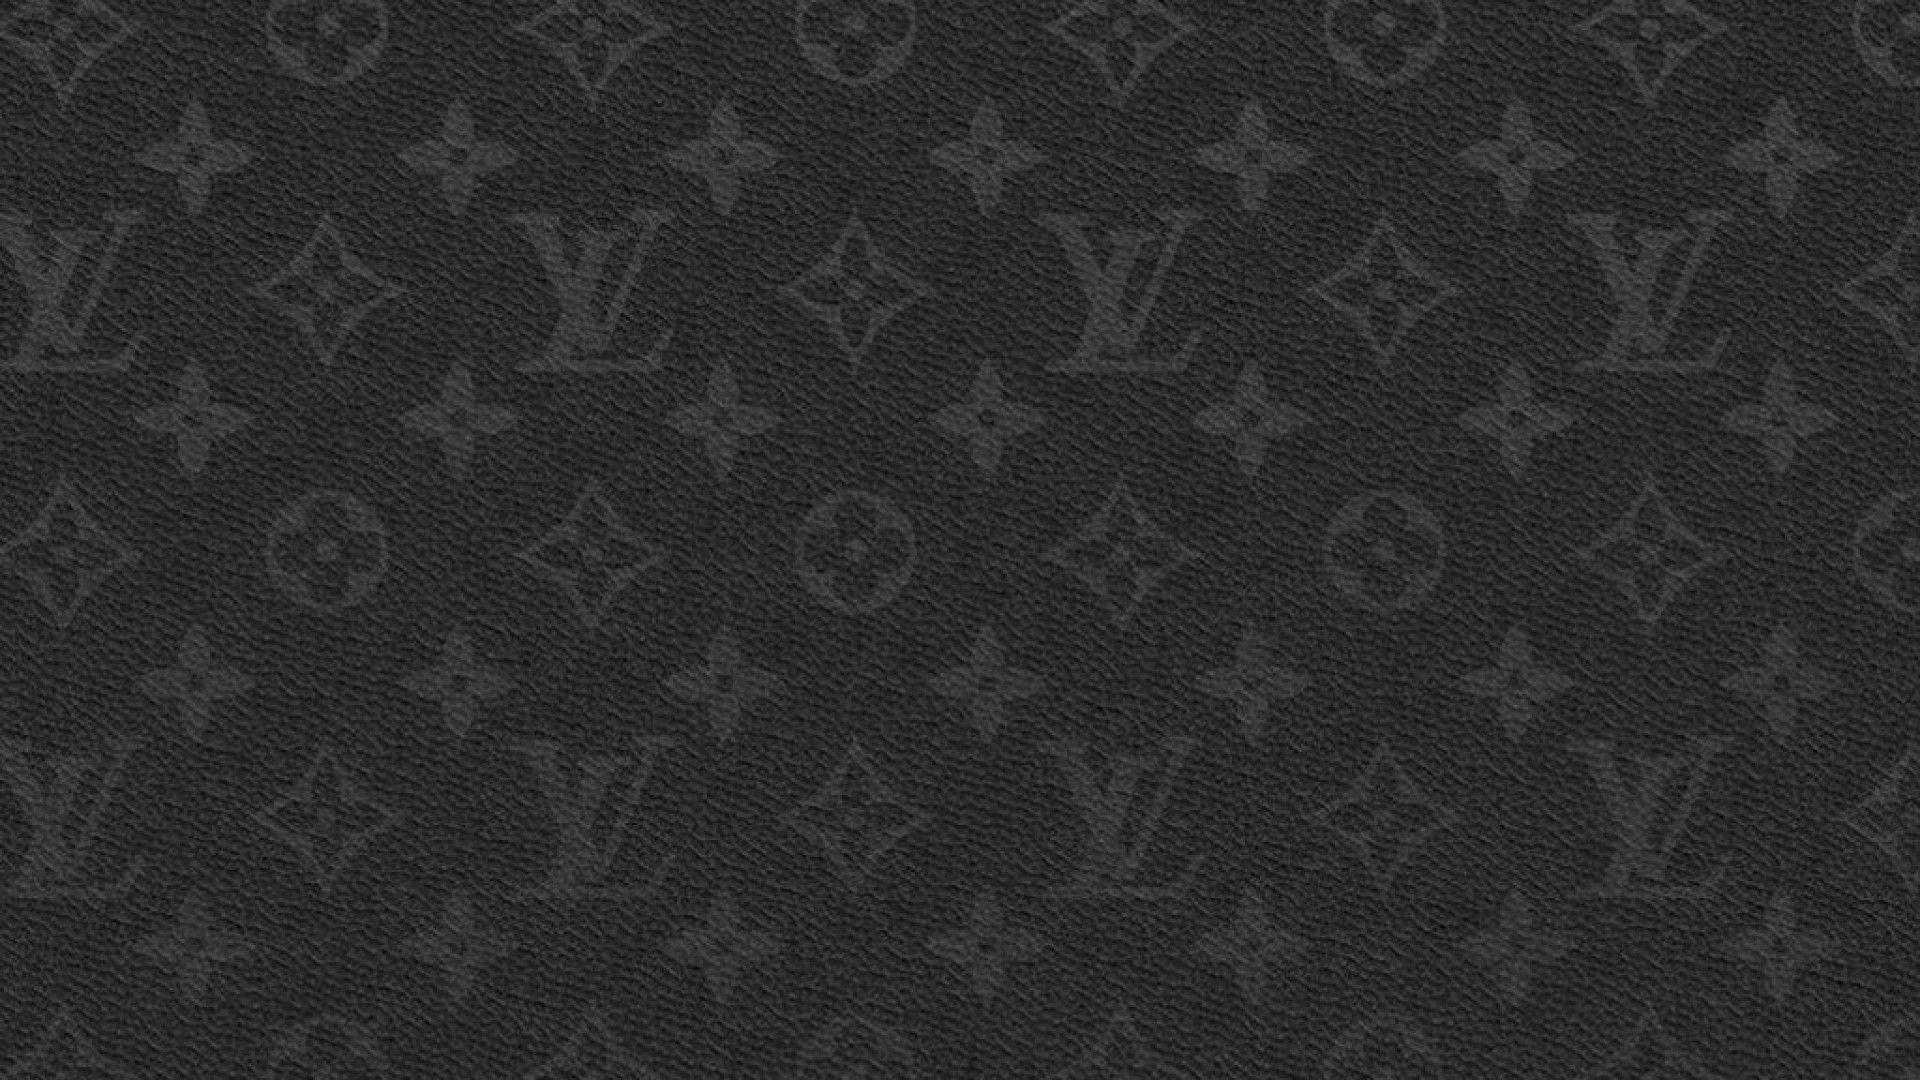 Louis vuitton backgrounds wallpaper cave fonds dcran louis vuitton tous les wallpapers louis vuitton voltagebd Choice Image